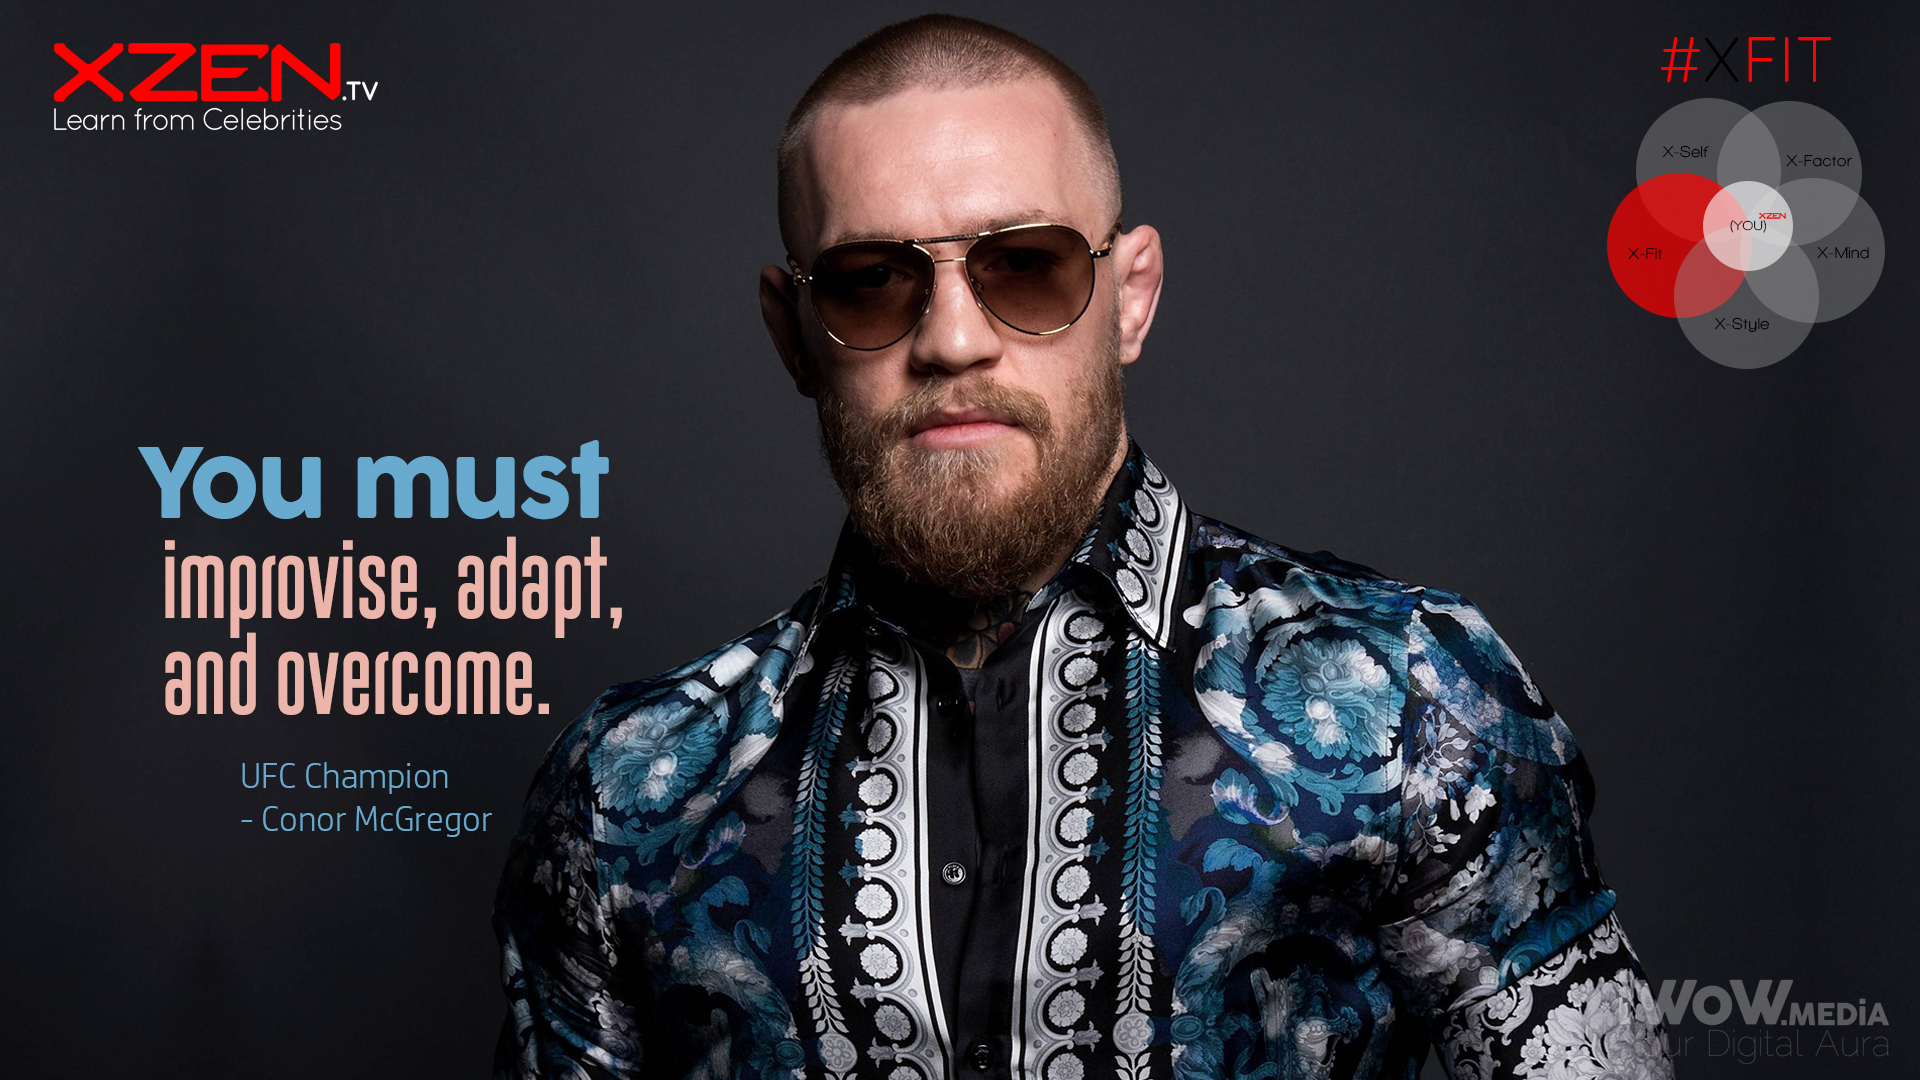 XFIT Conor McGregor